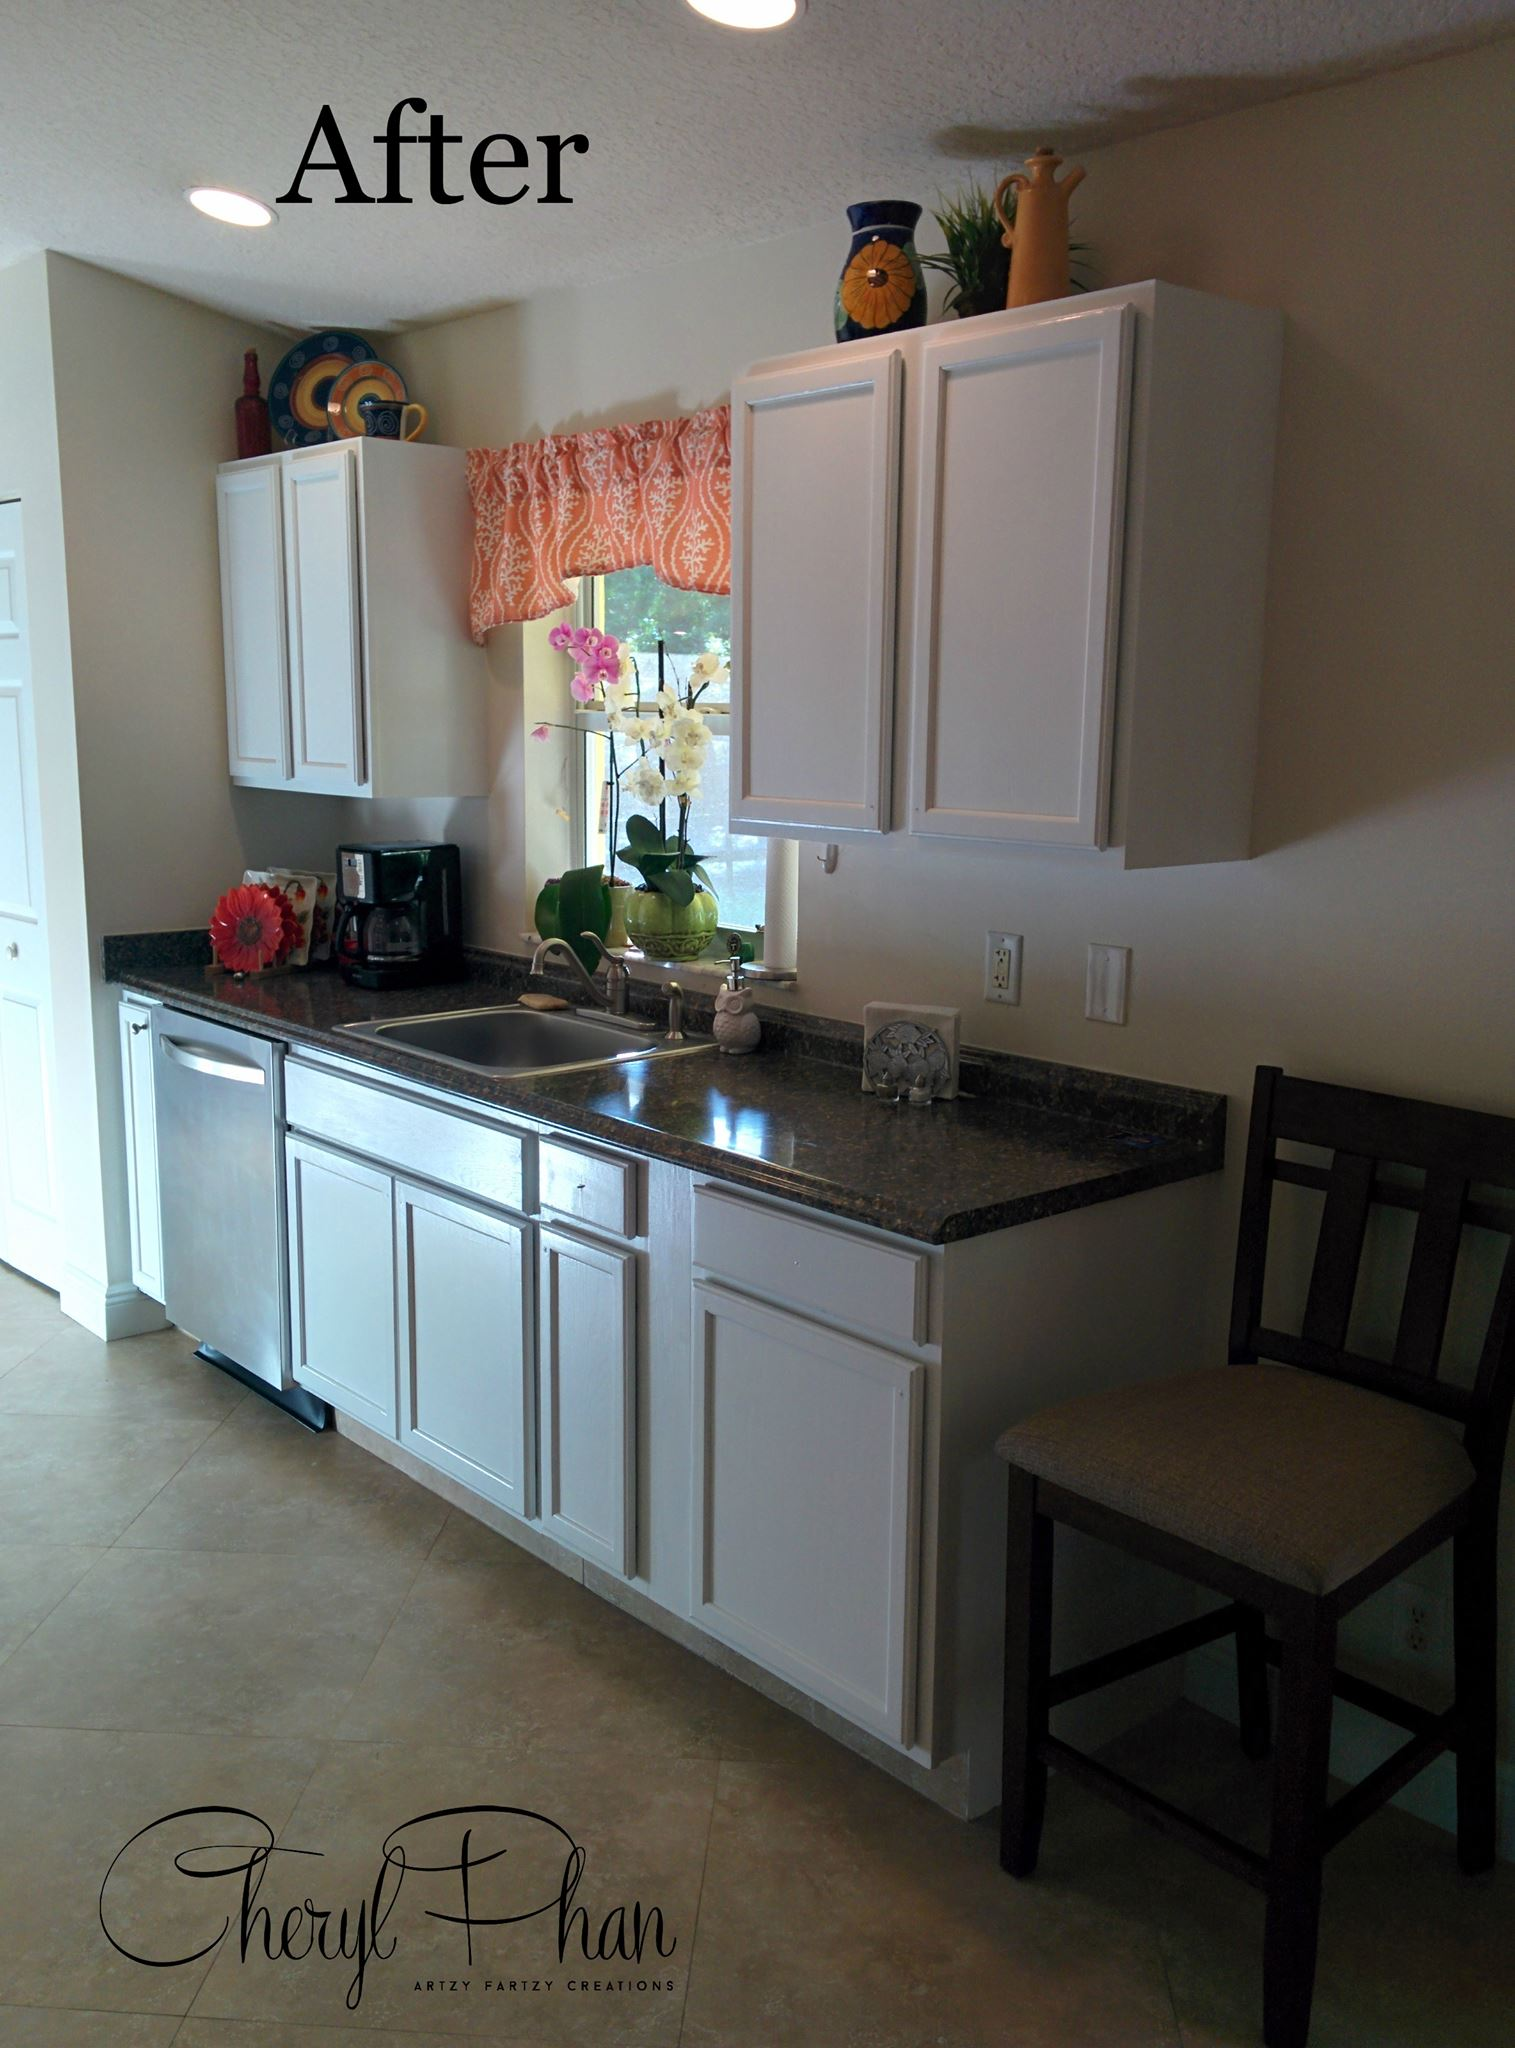 Wood or White Cabinets in the Kitchen - What's your ...